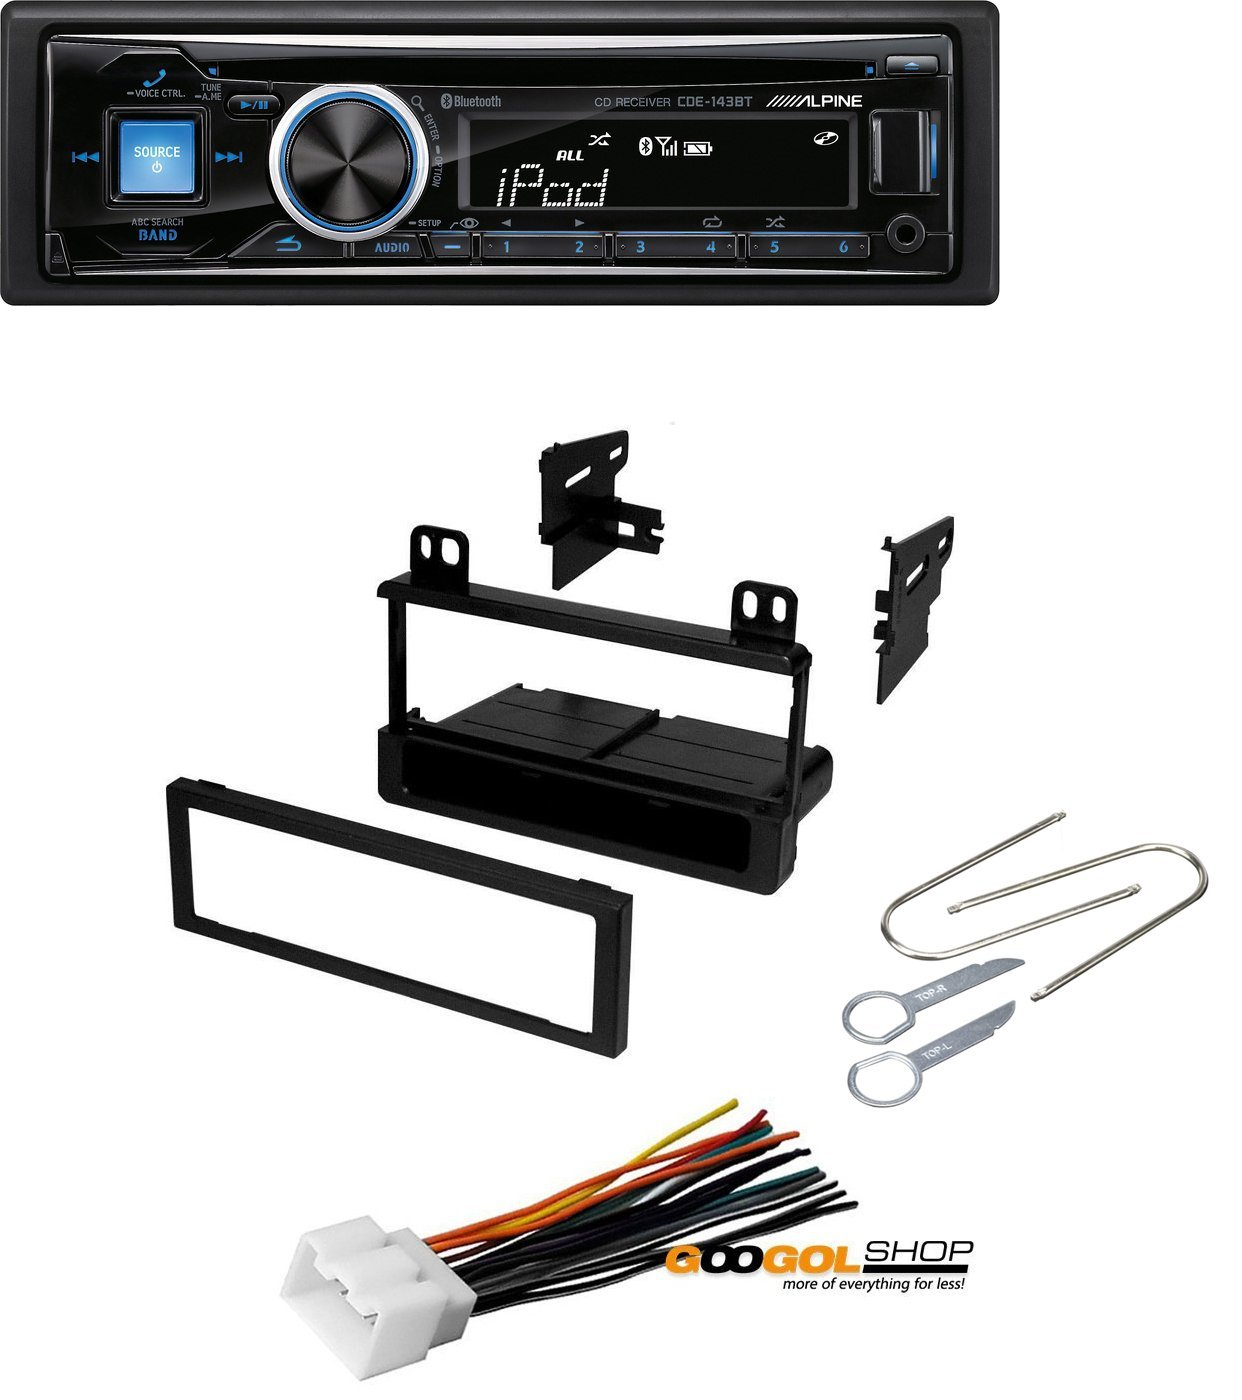 Car Stereo Radio Kit Dash Installation Mounting Wire Diagram Pioneer Deh 73bt Wiring Harness Removal Tools With Alpine Cde 143bt Advanced Bluetooth Cd Receiver